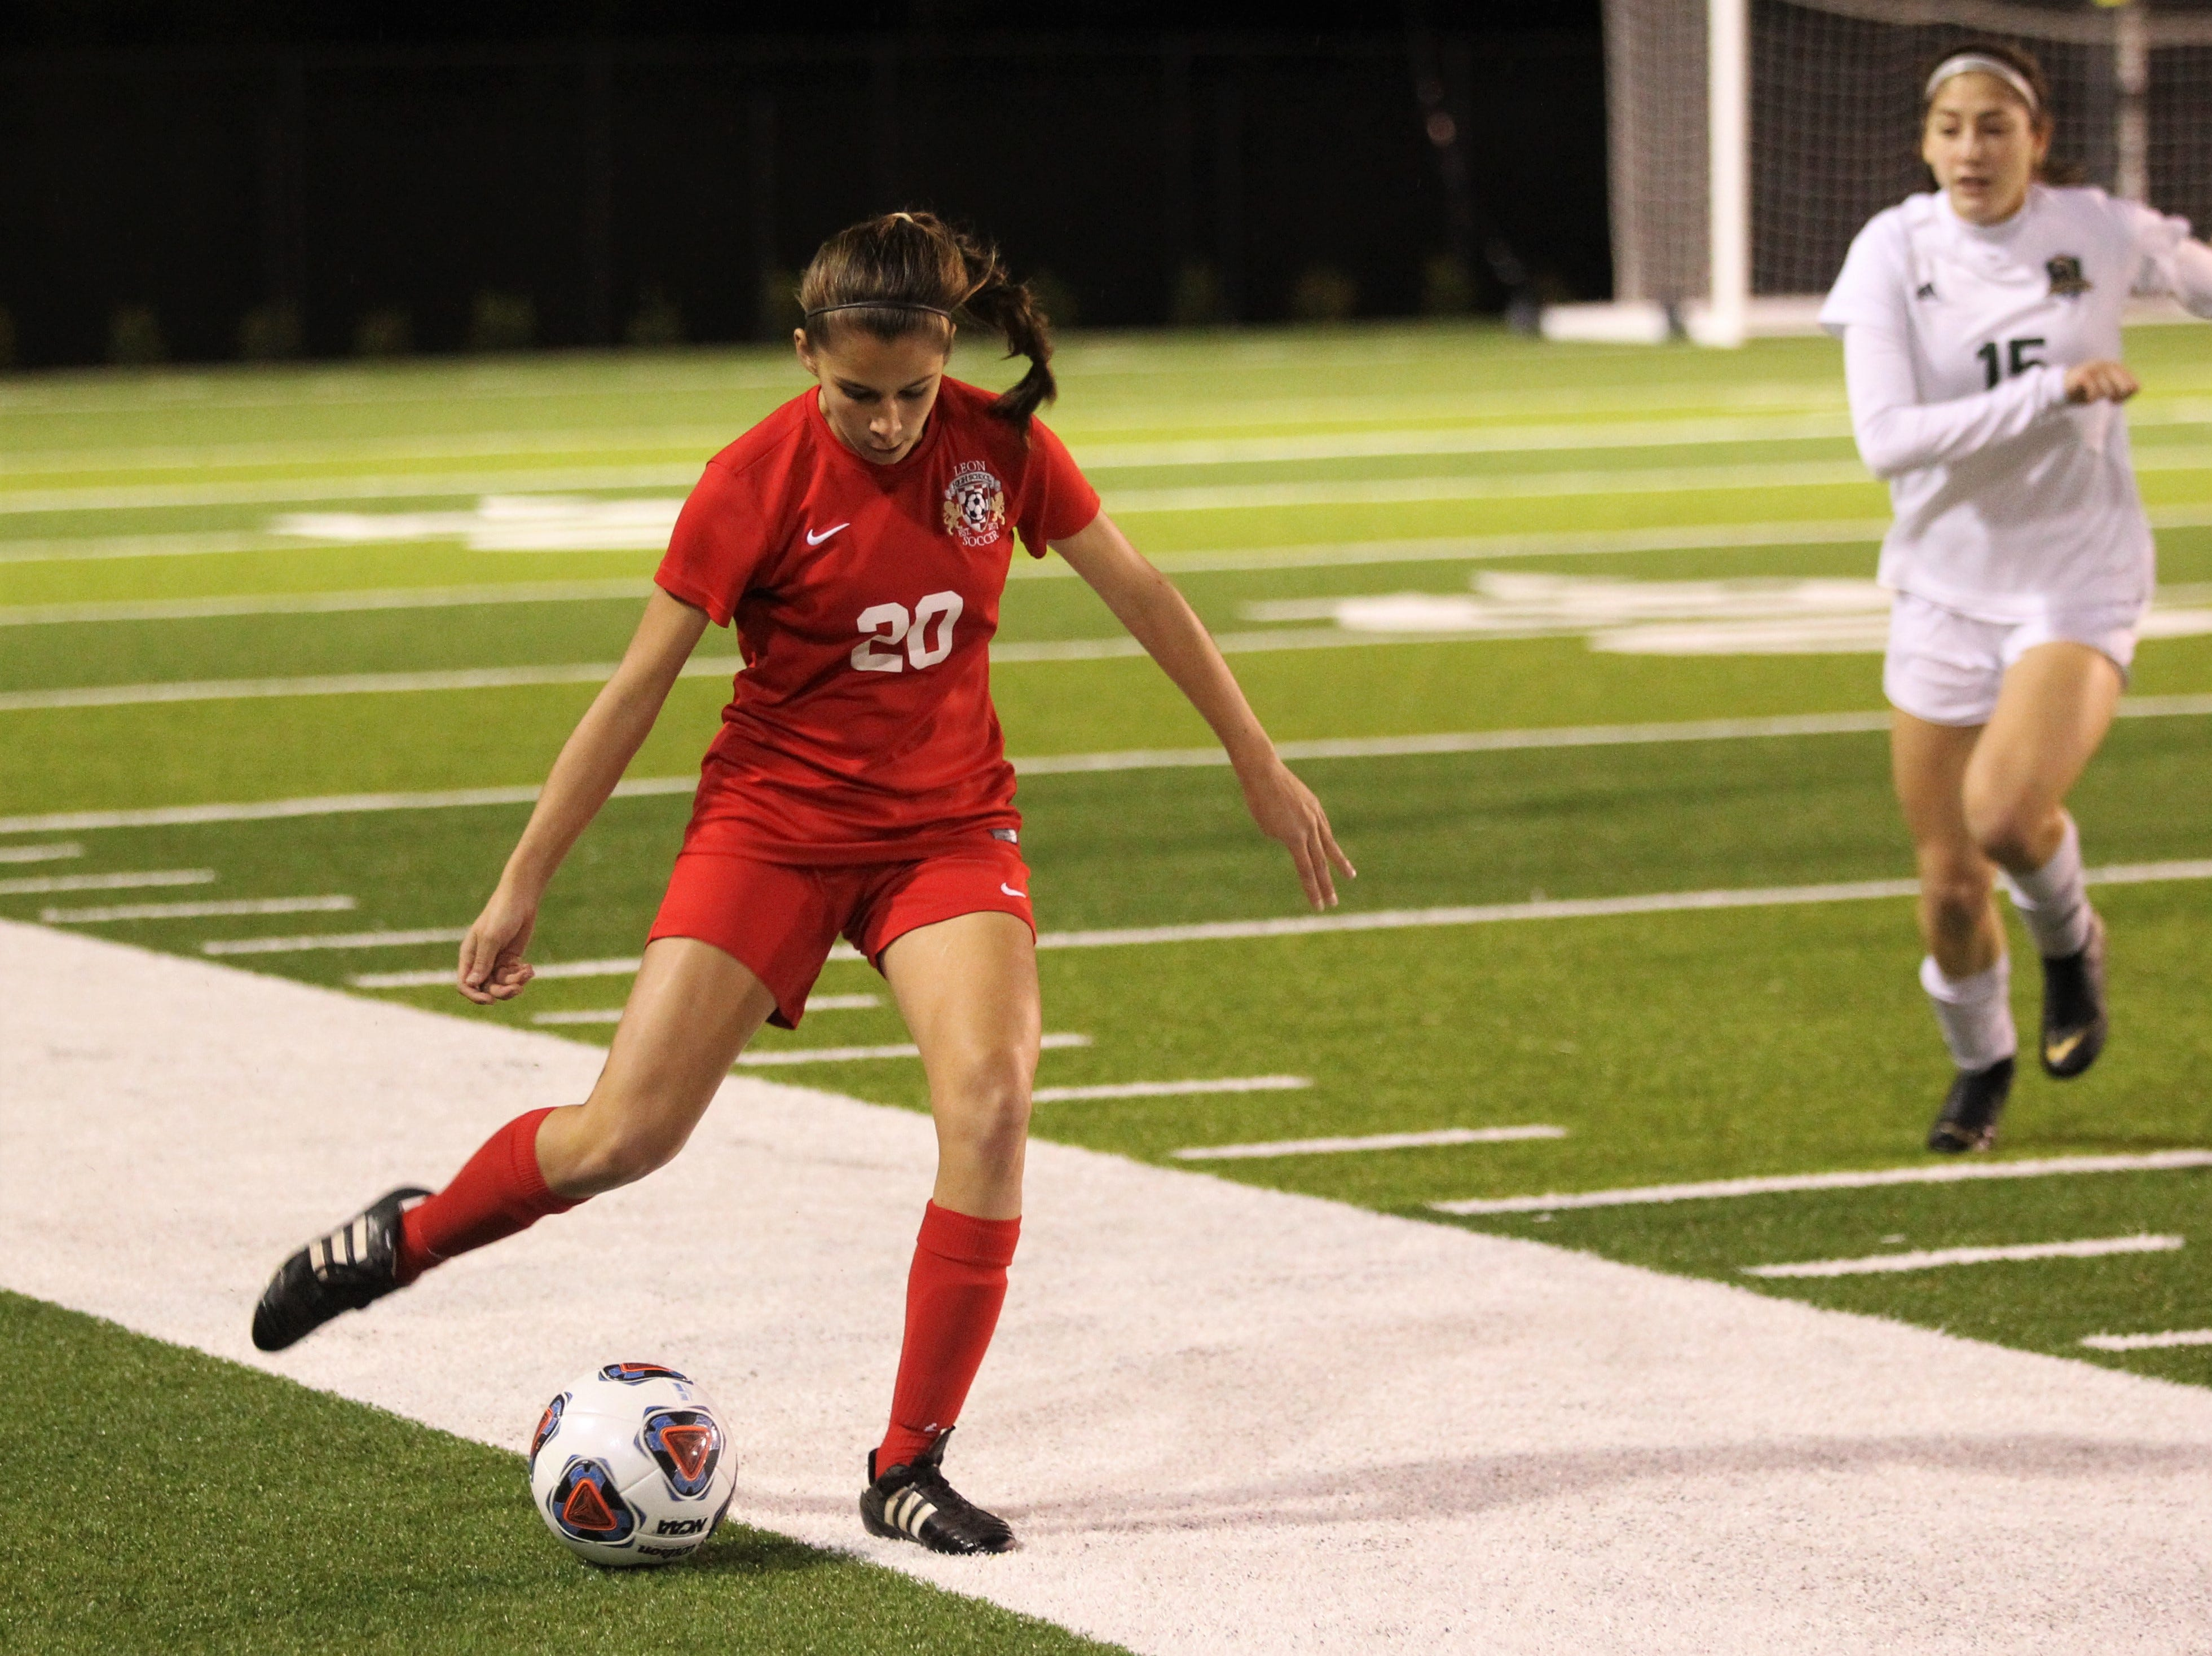 Leon's Camilla Nunez plays a pass as Leon's girls soccer team beat Lincoln in the District 2-4A championship on Feb. 1, 2019.